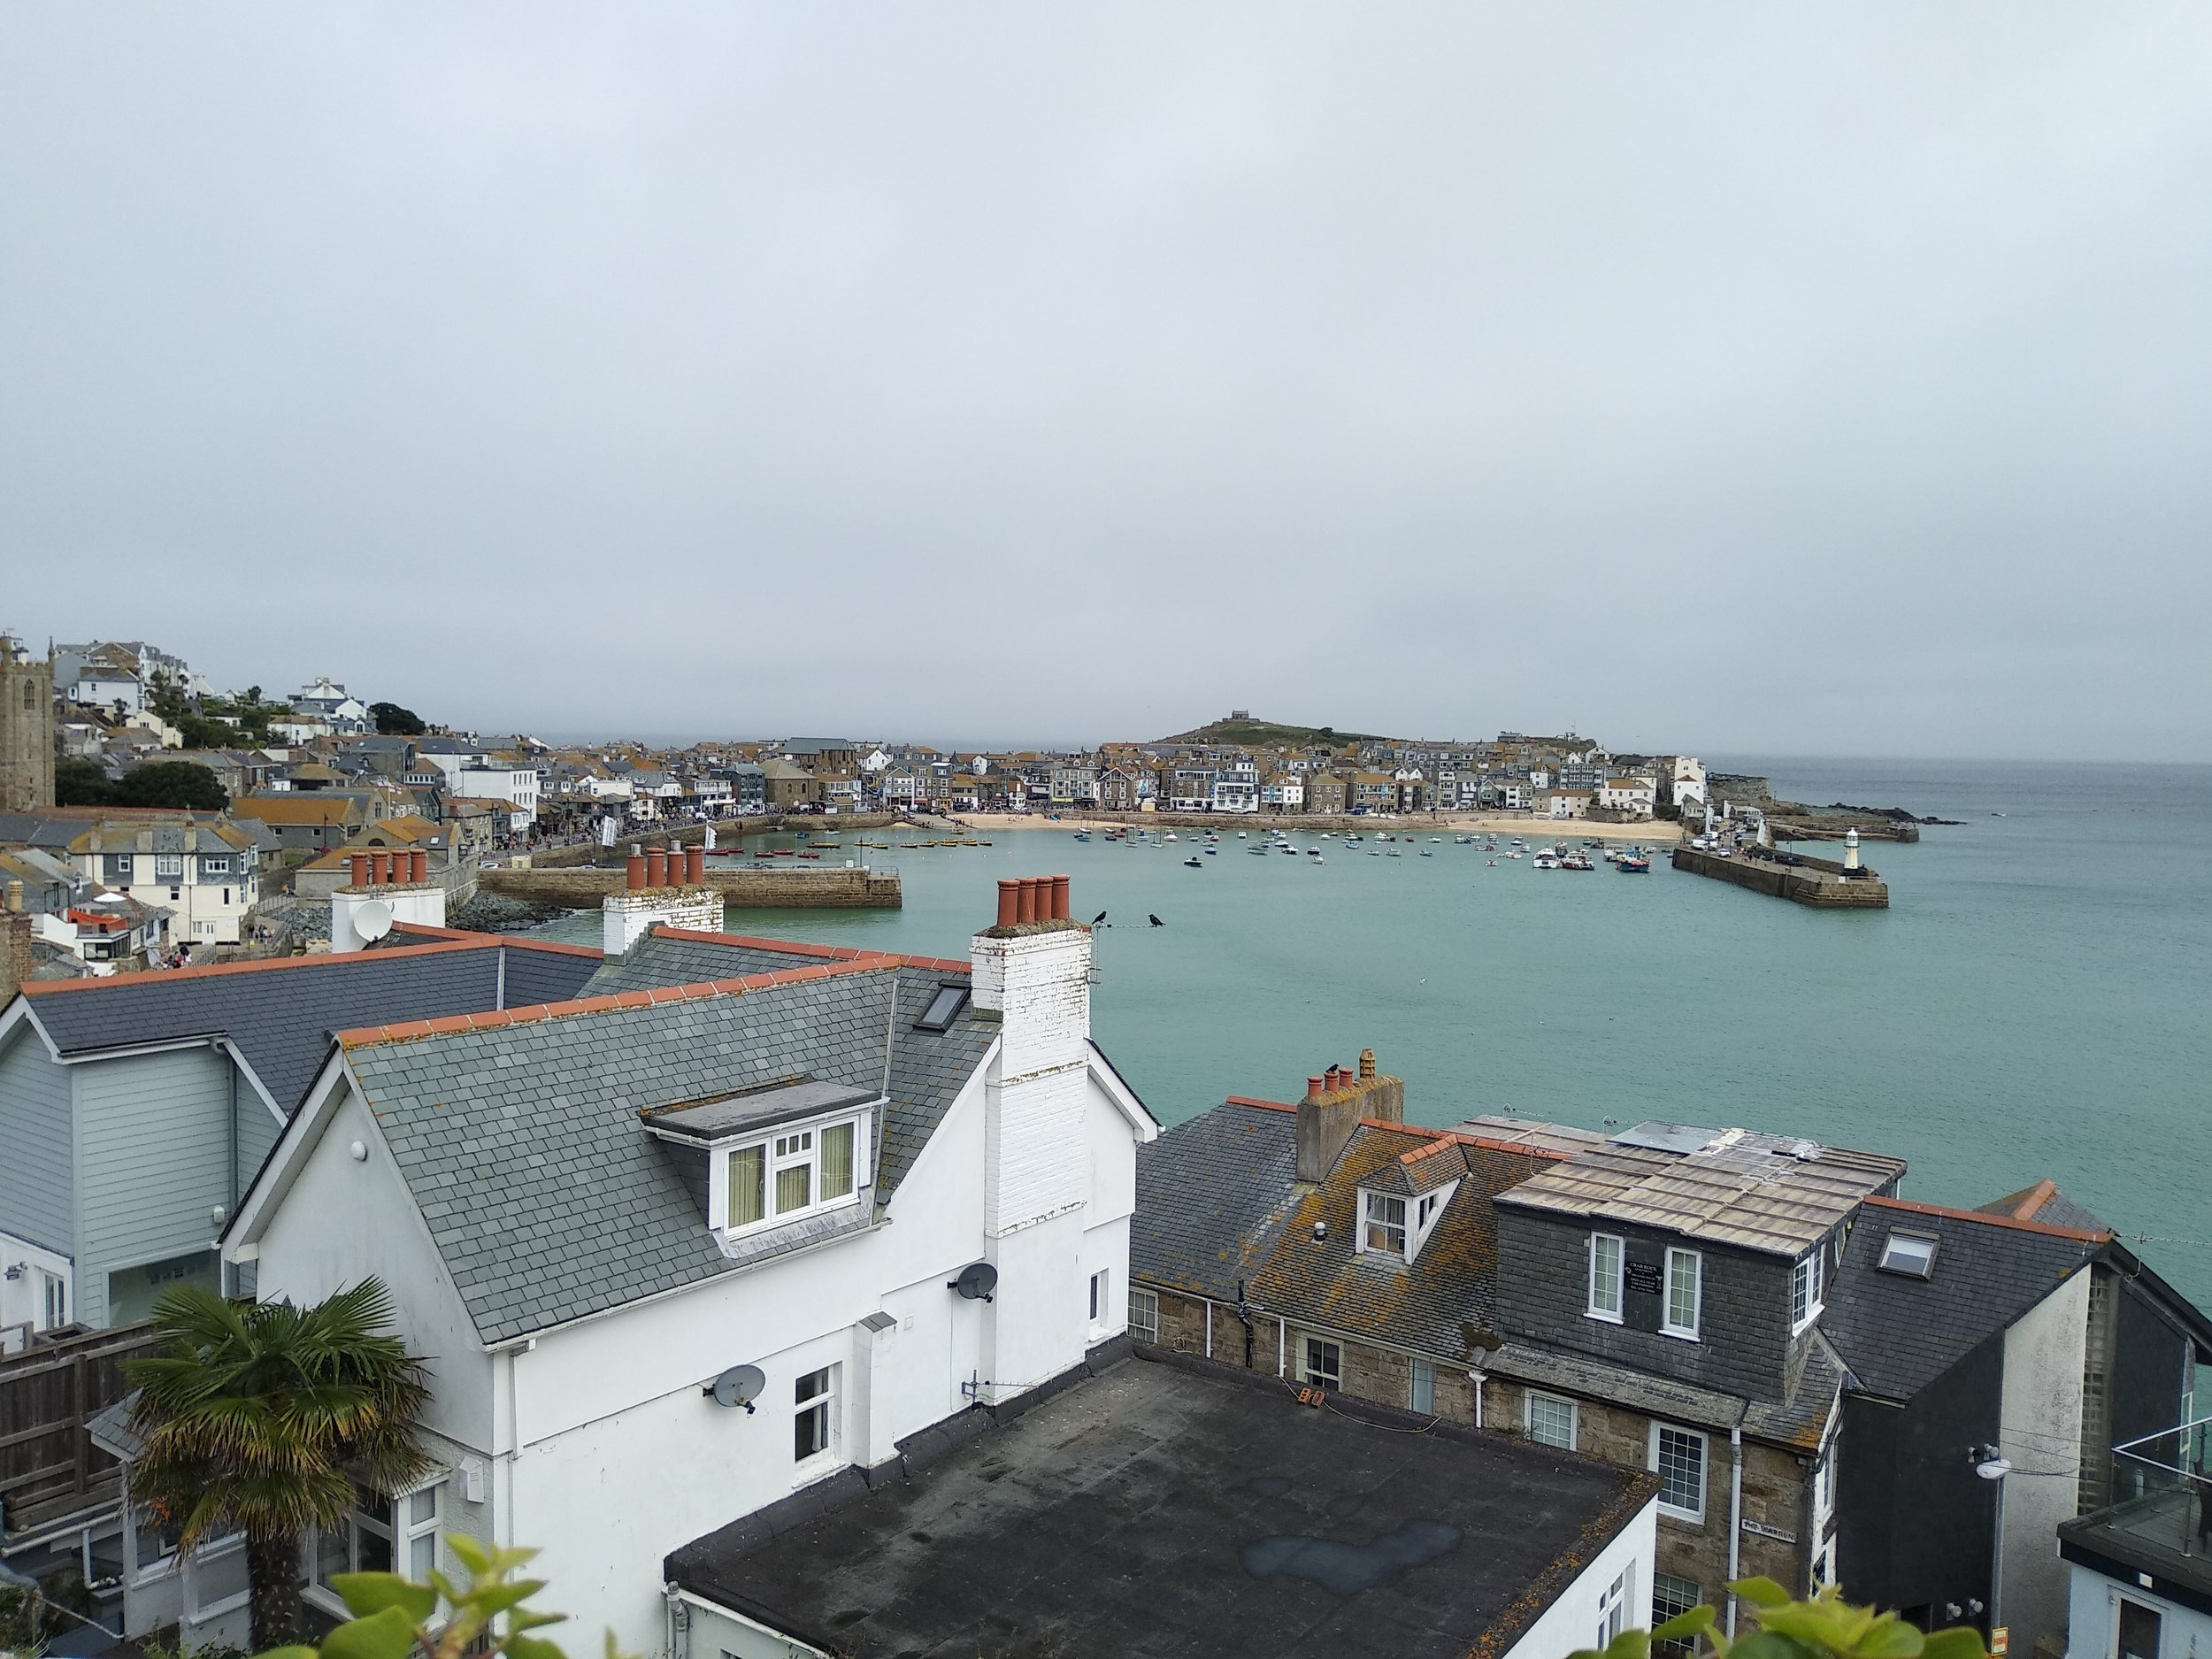 The very beautiful and very crowded St Ives.